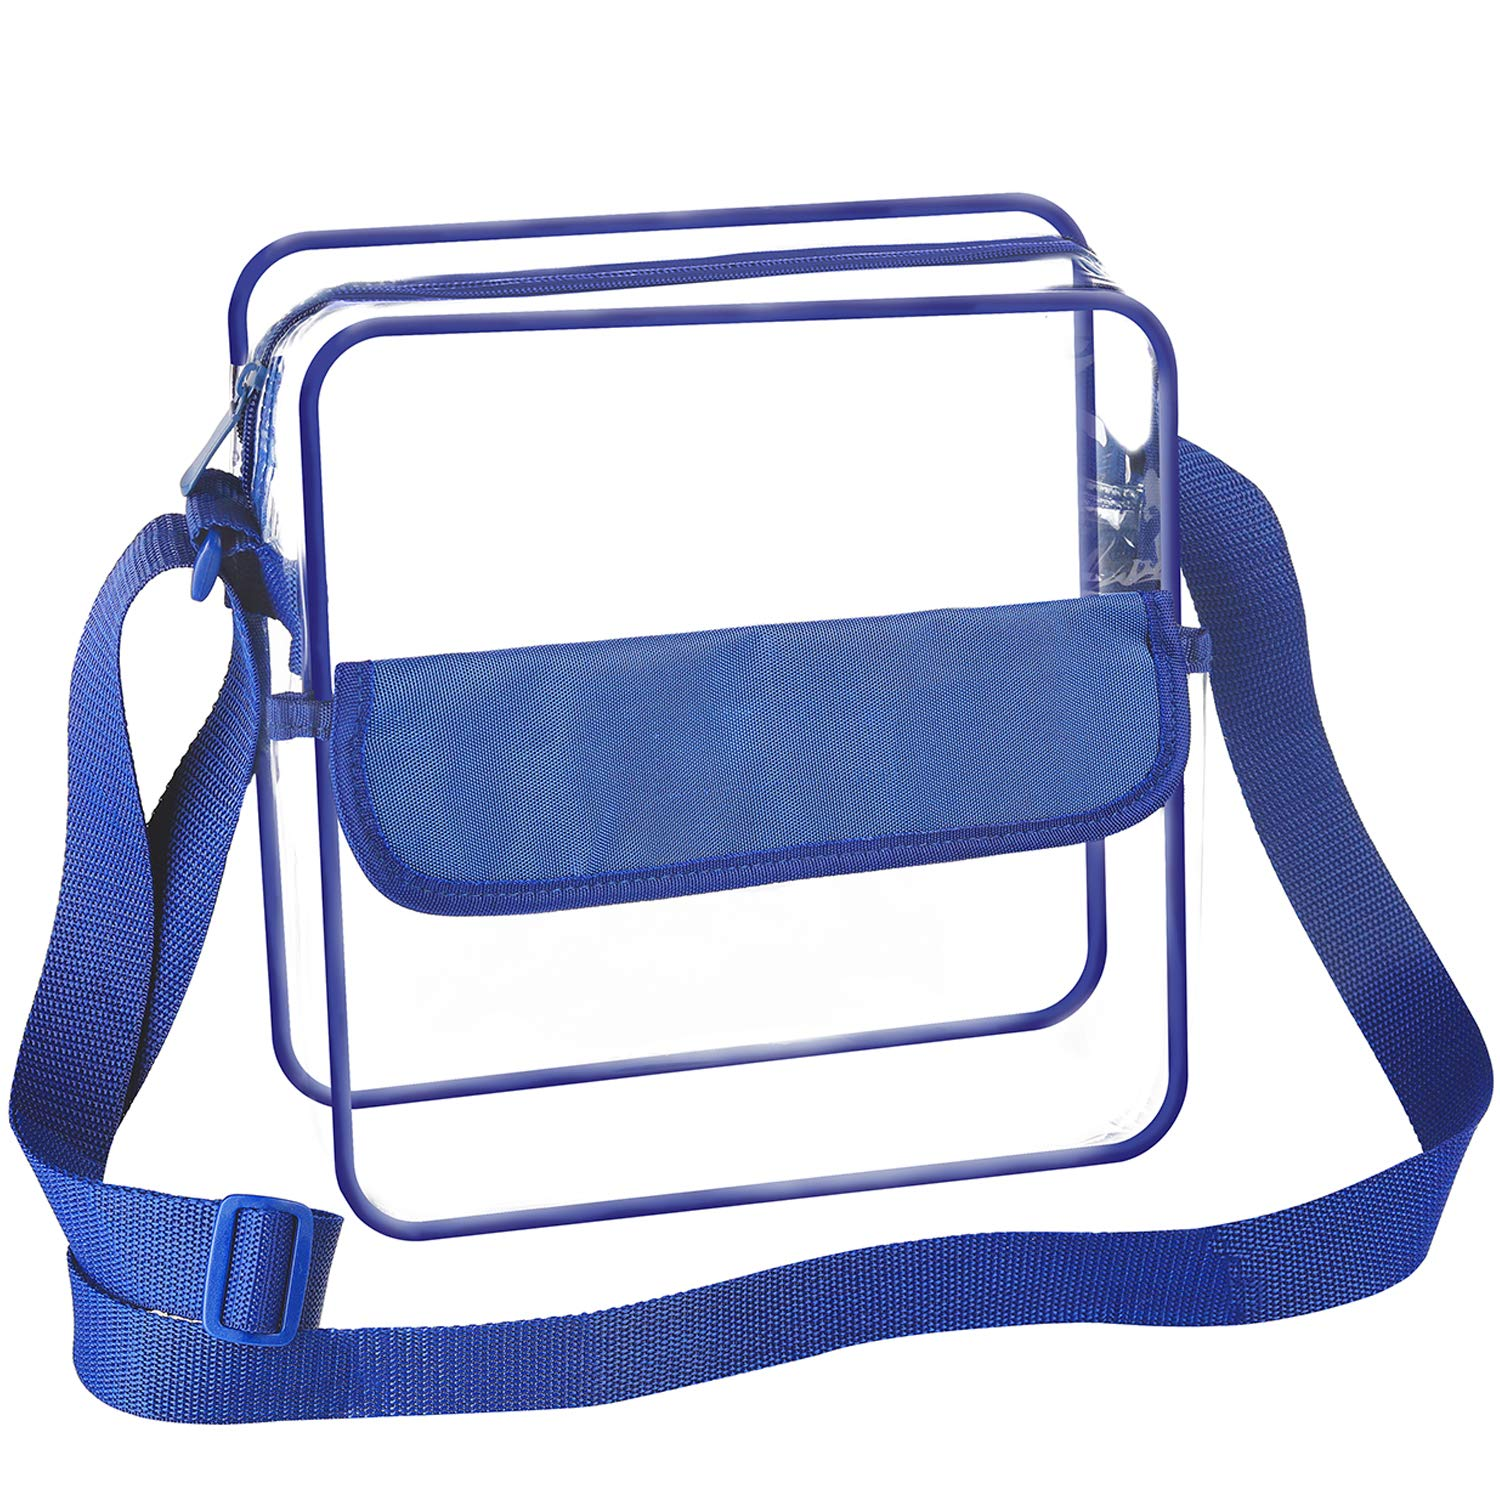 PGA NCAA and NFL Stadium Approved Clear Purse Seasons Treasure 8 inch Clear Cross-Body Messenger Shoulder Bag w Adjustable Strap